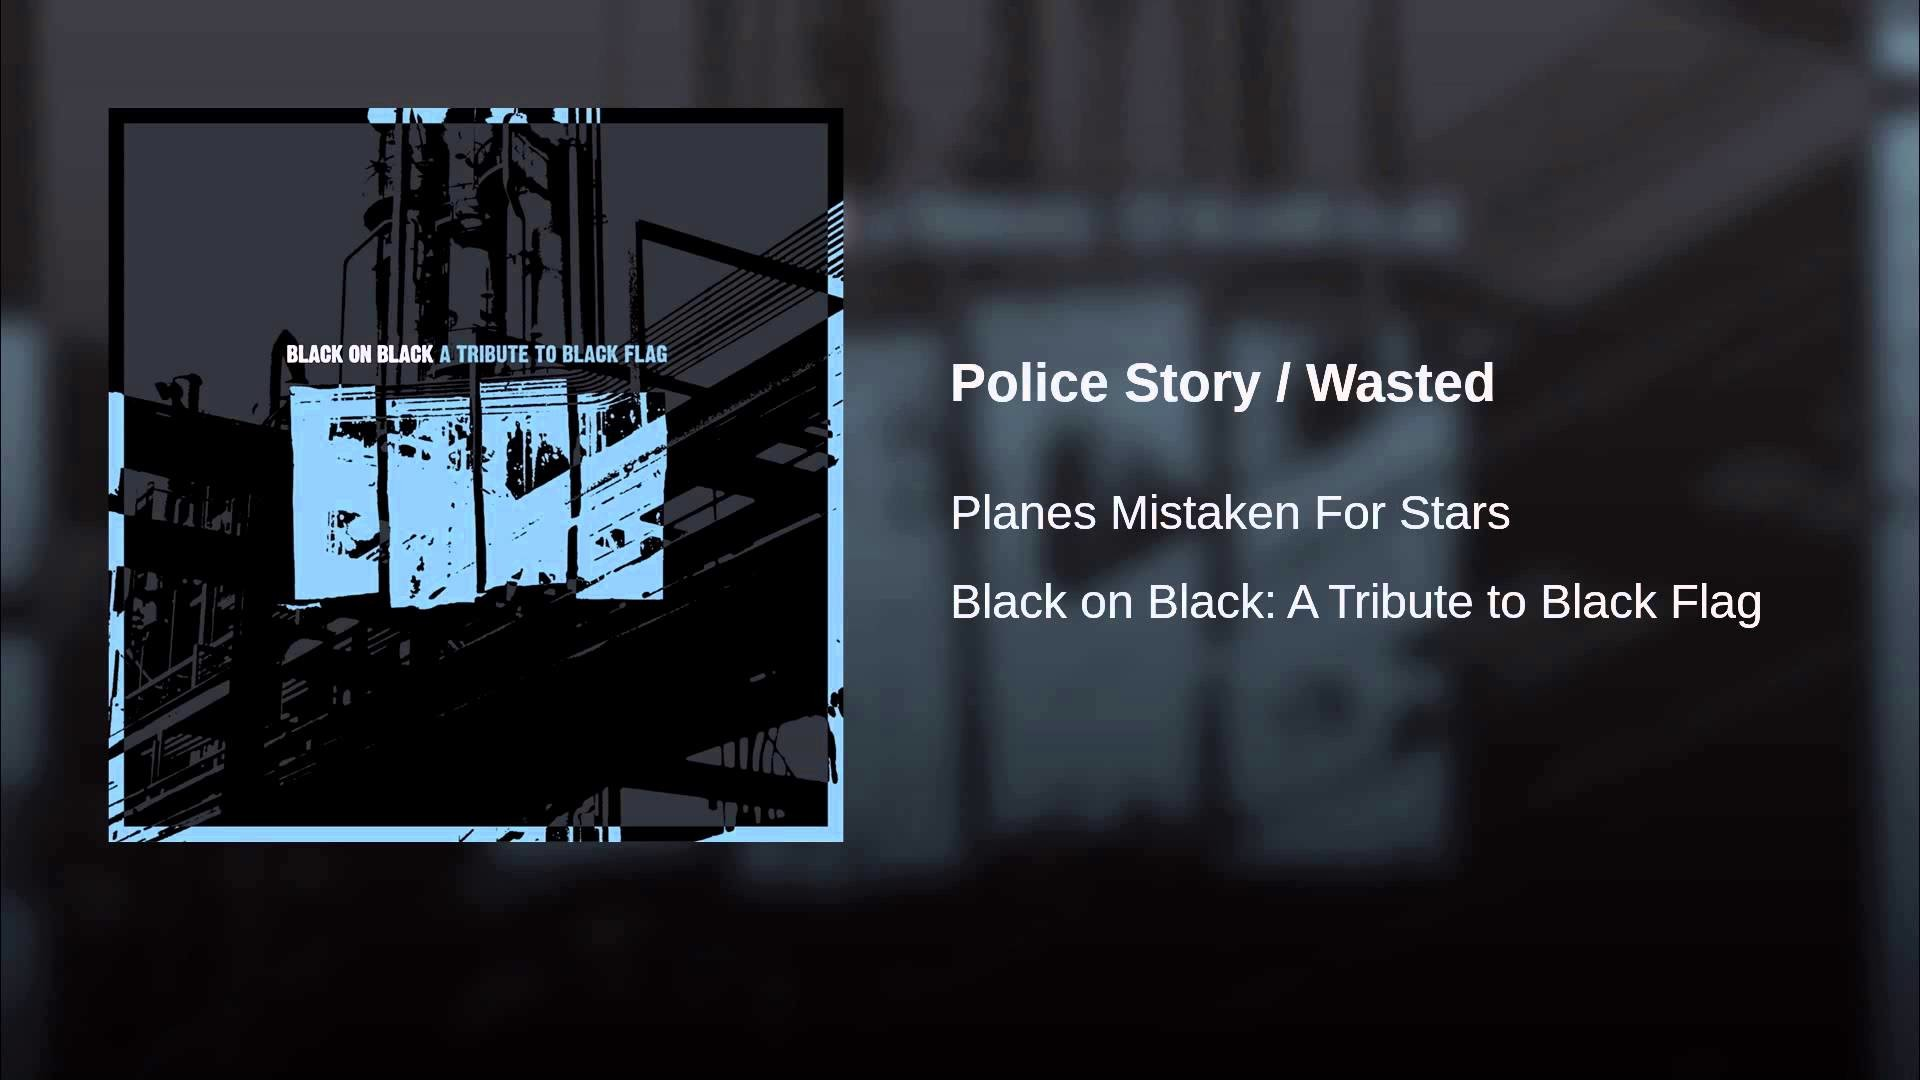 Police Story / Wasted